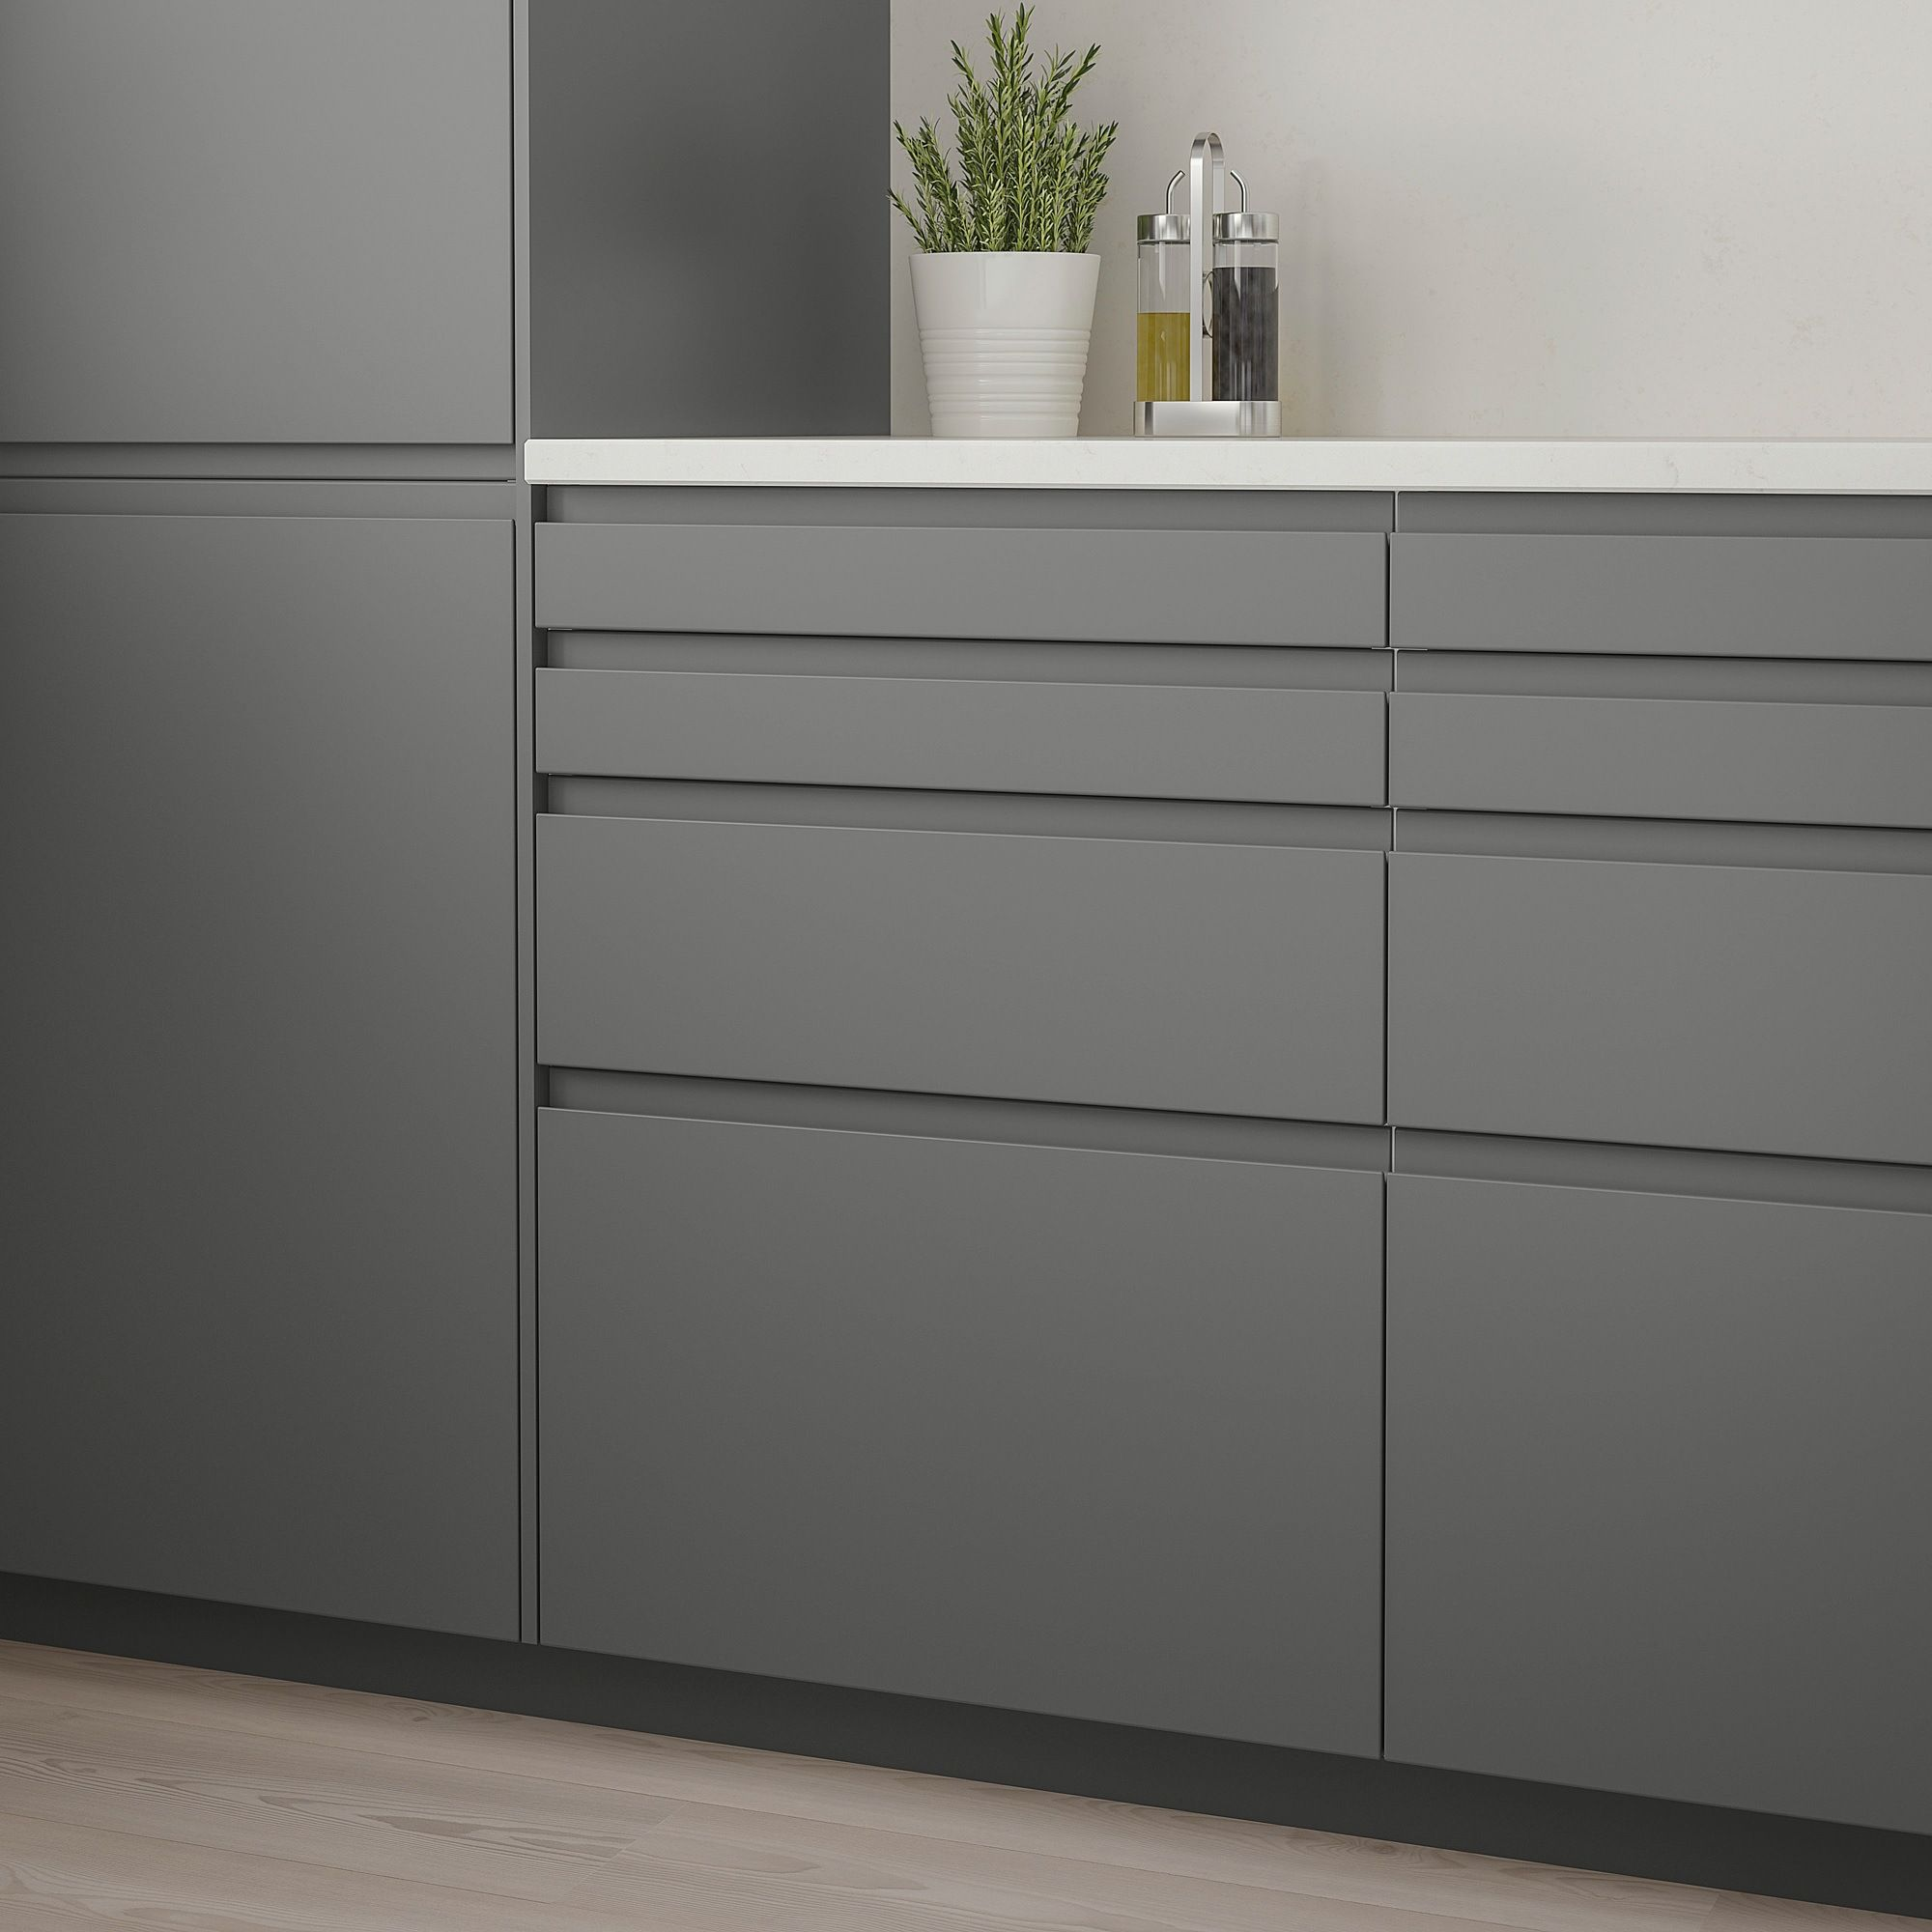 Best Ikea Voxtorp Dark Gray Drawer Front In 2020 Kitchen 400 x 300